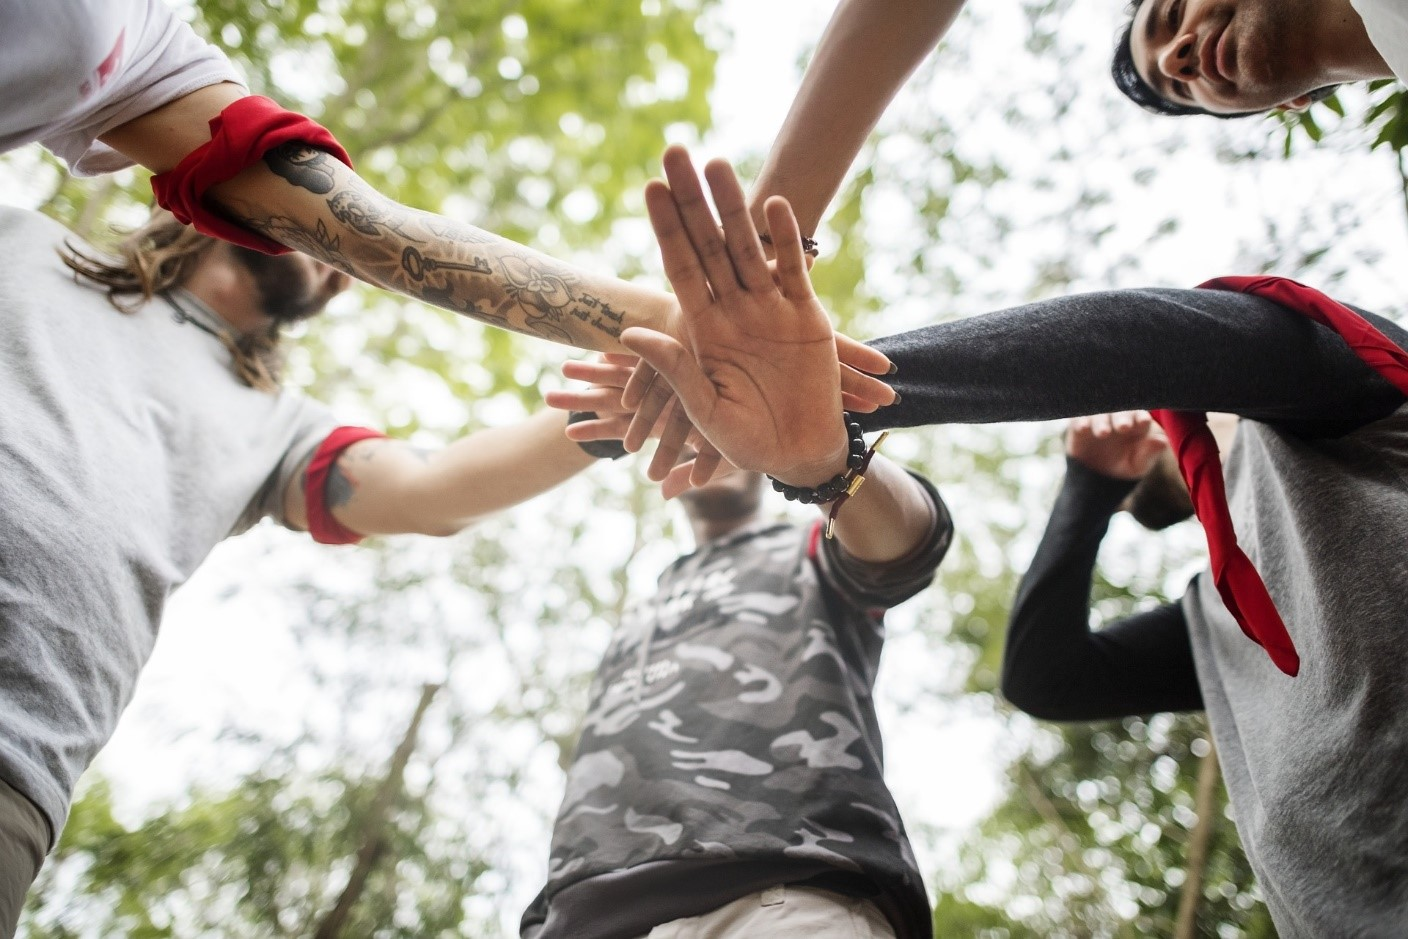 45-outdoor-team-building-activity-ideas-for-work-groups-1